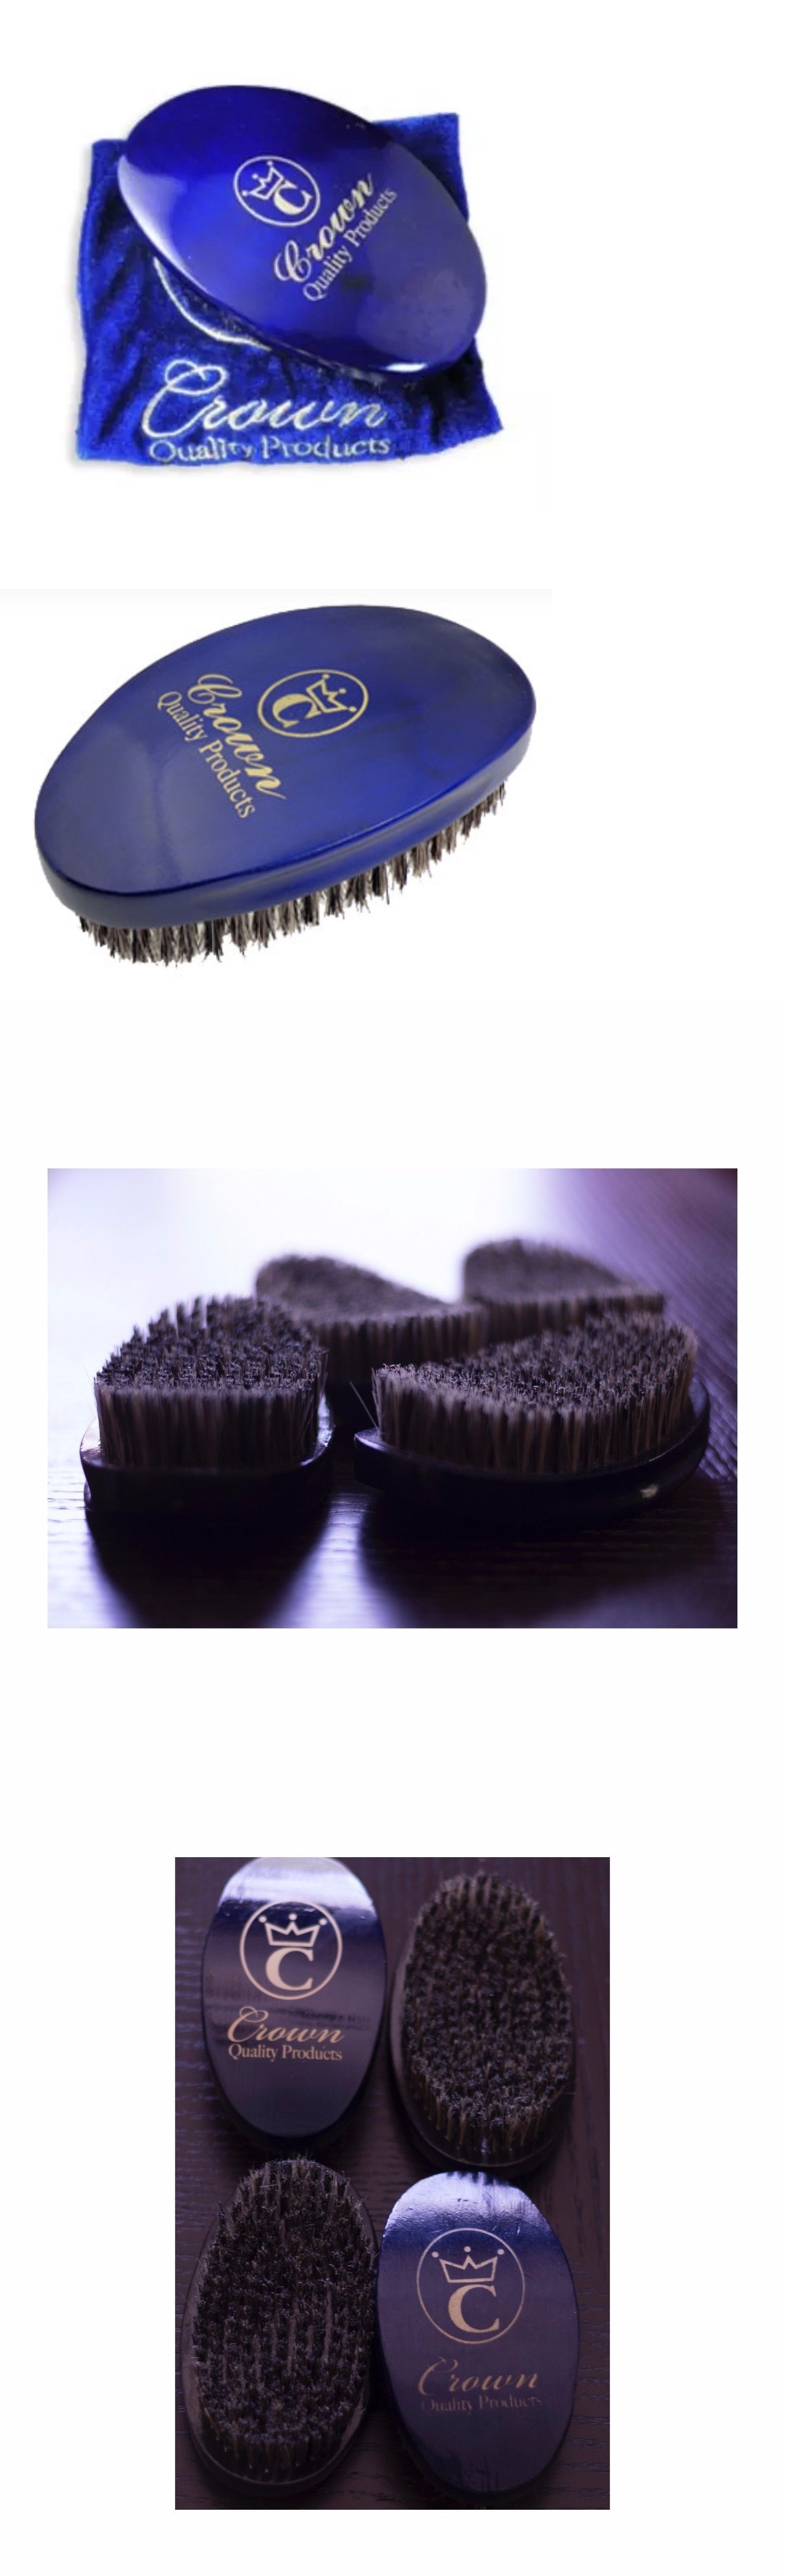 Crown Quality Products 360 Gold Caesar Wave Brush Medium Blue In The Wet Tourmaline Blowout Brushes And Combs 11855 Buy It Now Only 1995 On Ebay